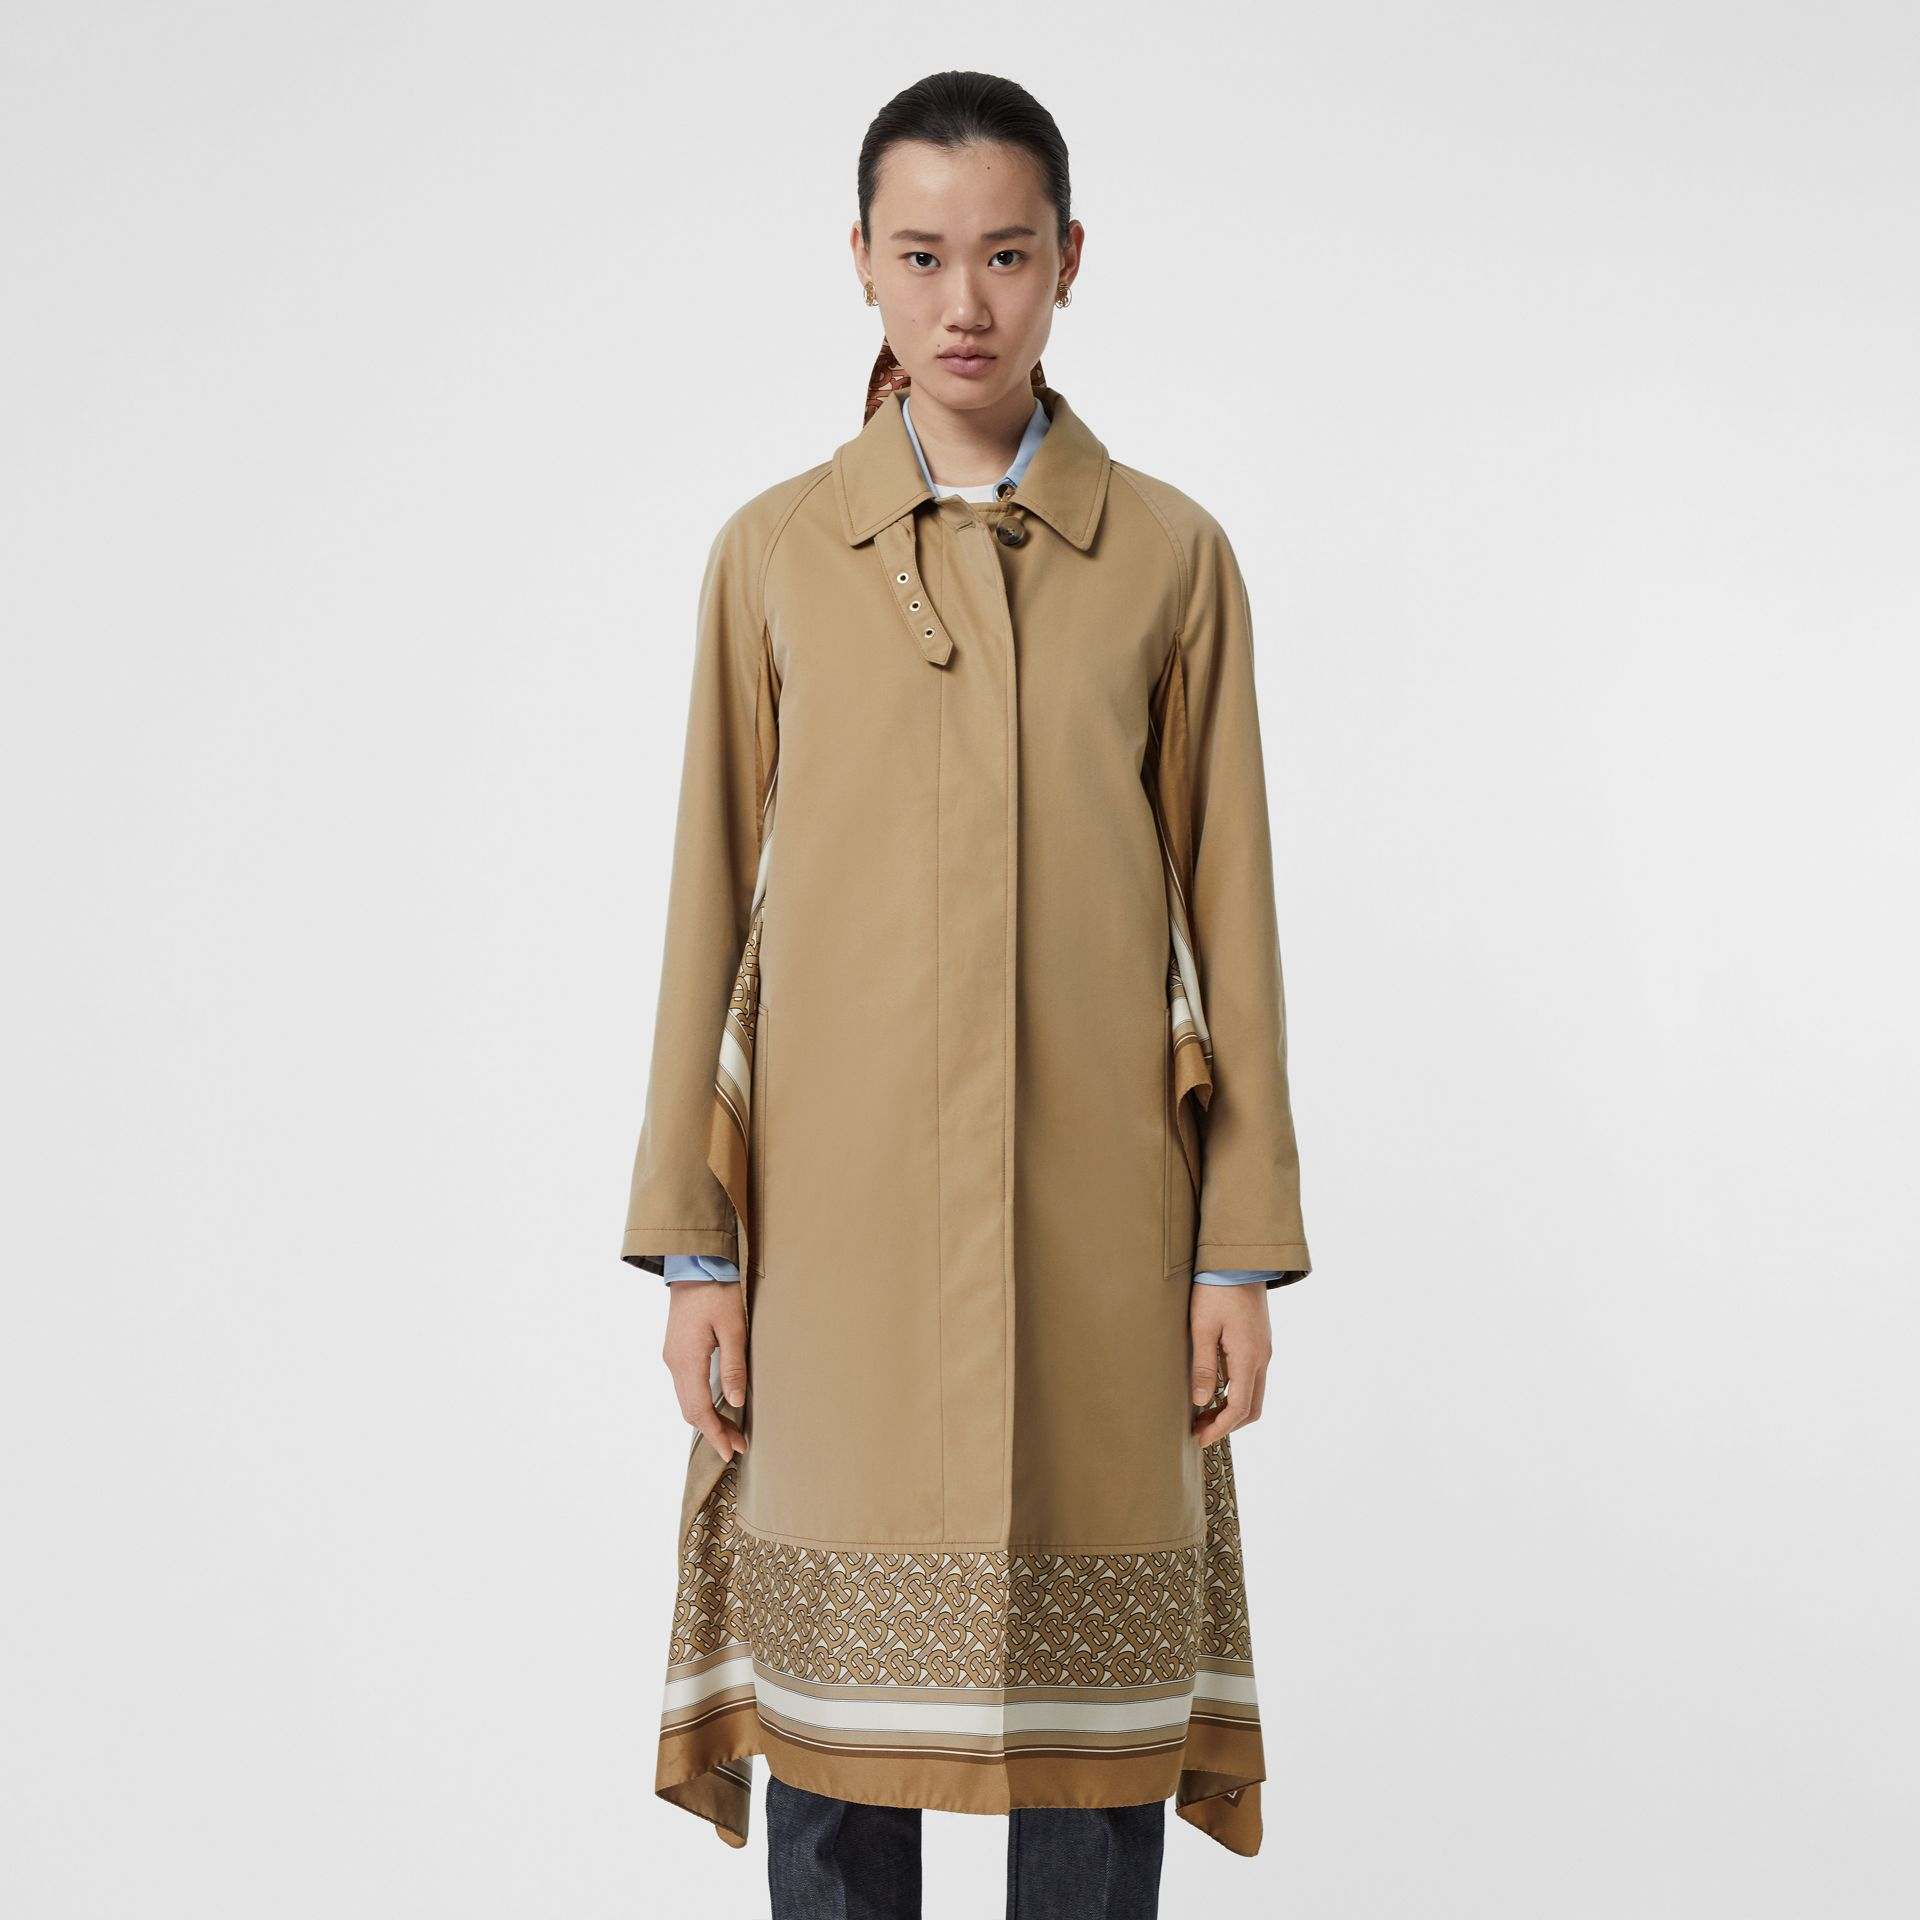 Monogram Print Silk Panel Cotton Car Coat in Pale Honey - Women | Burberry United States - gallery image 6